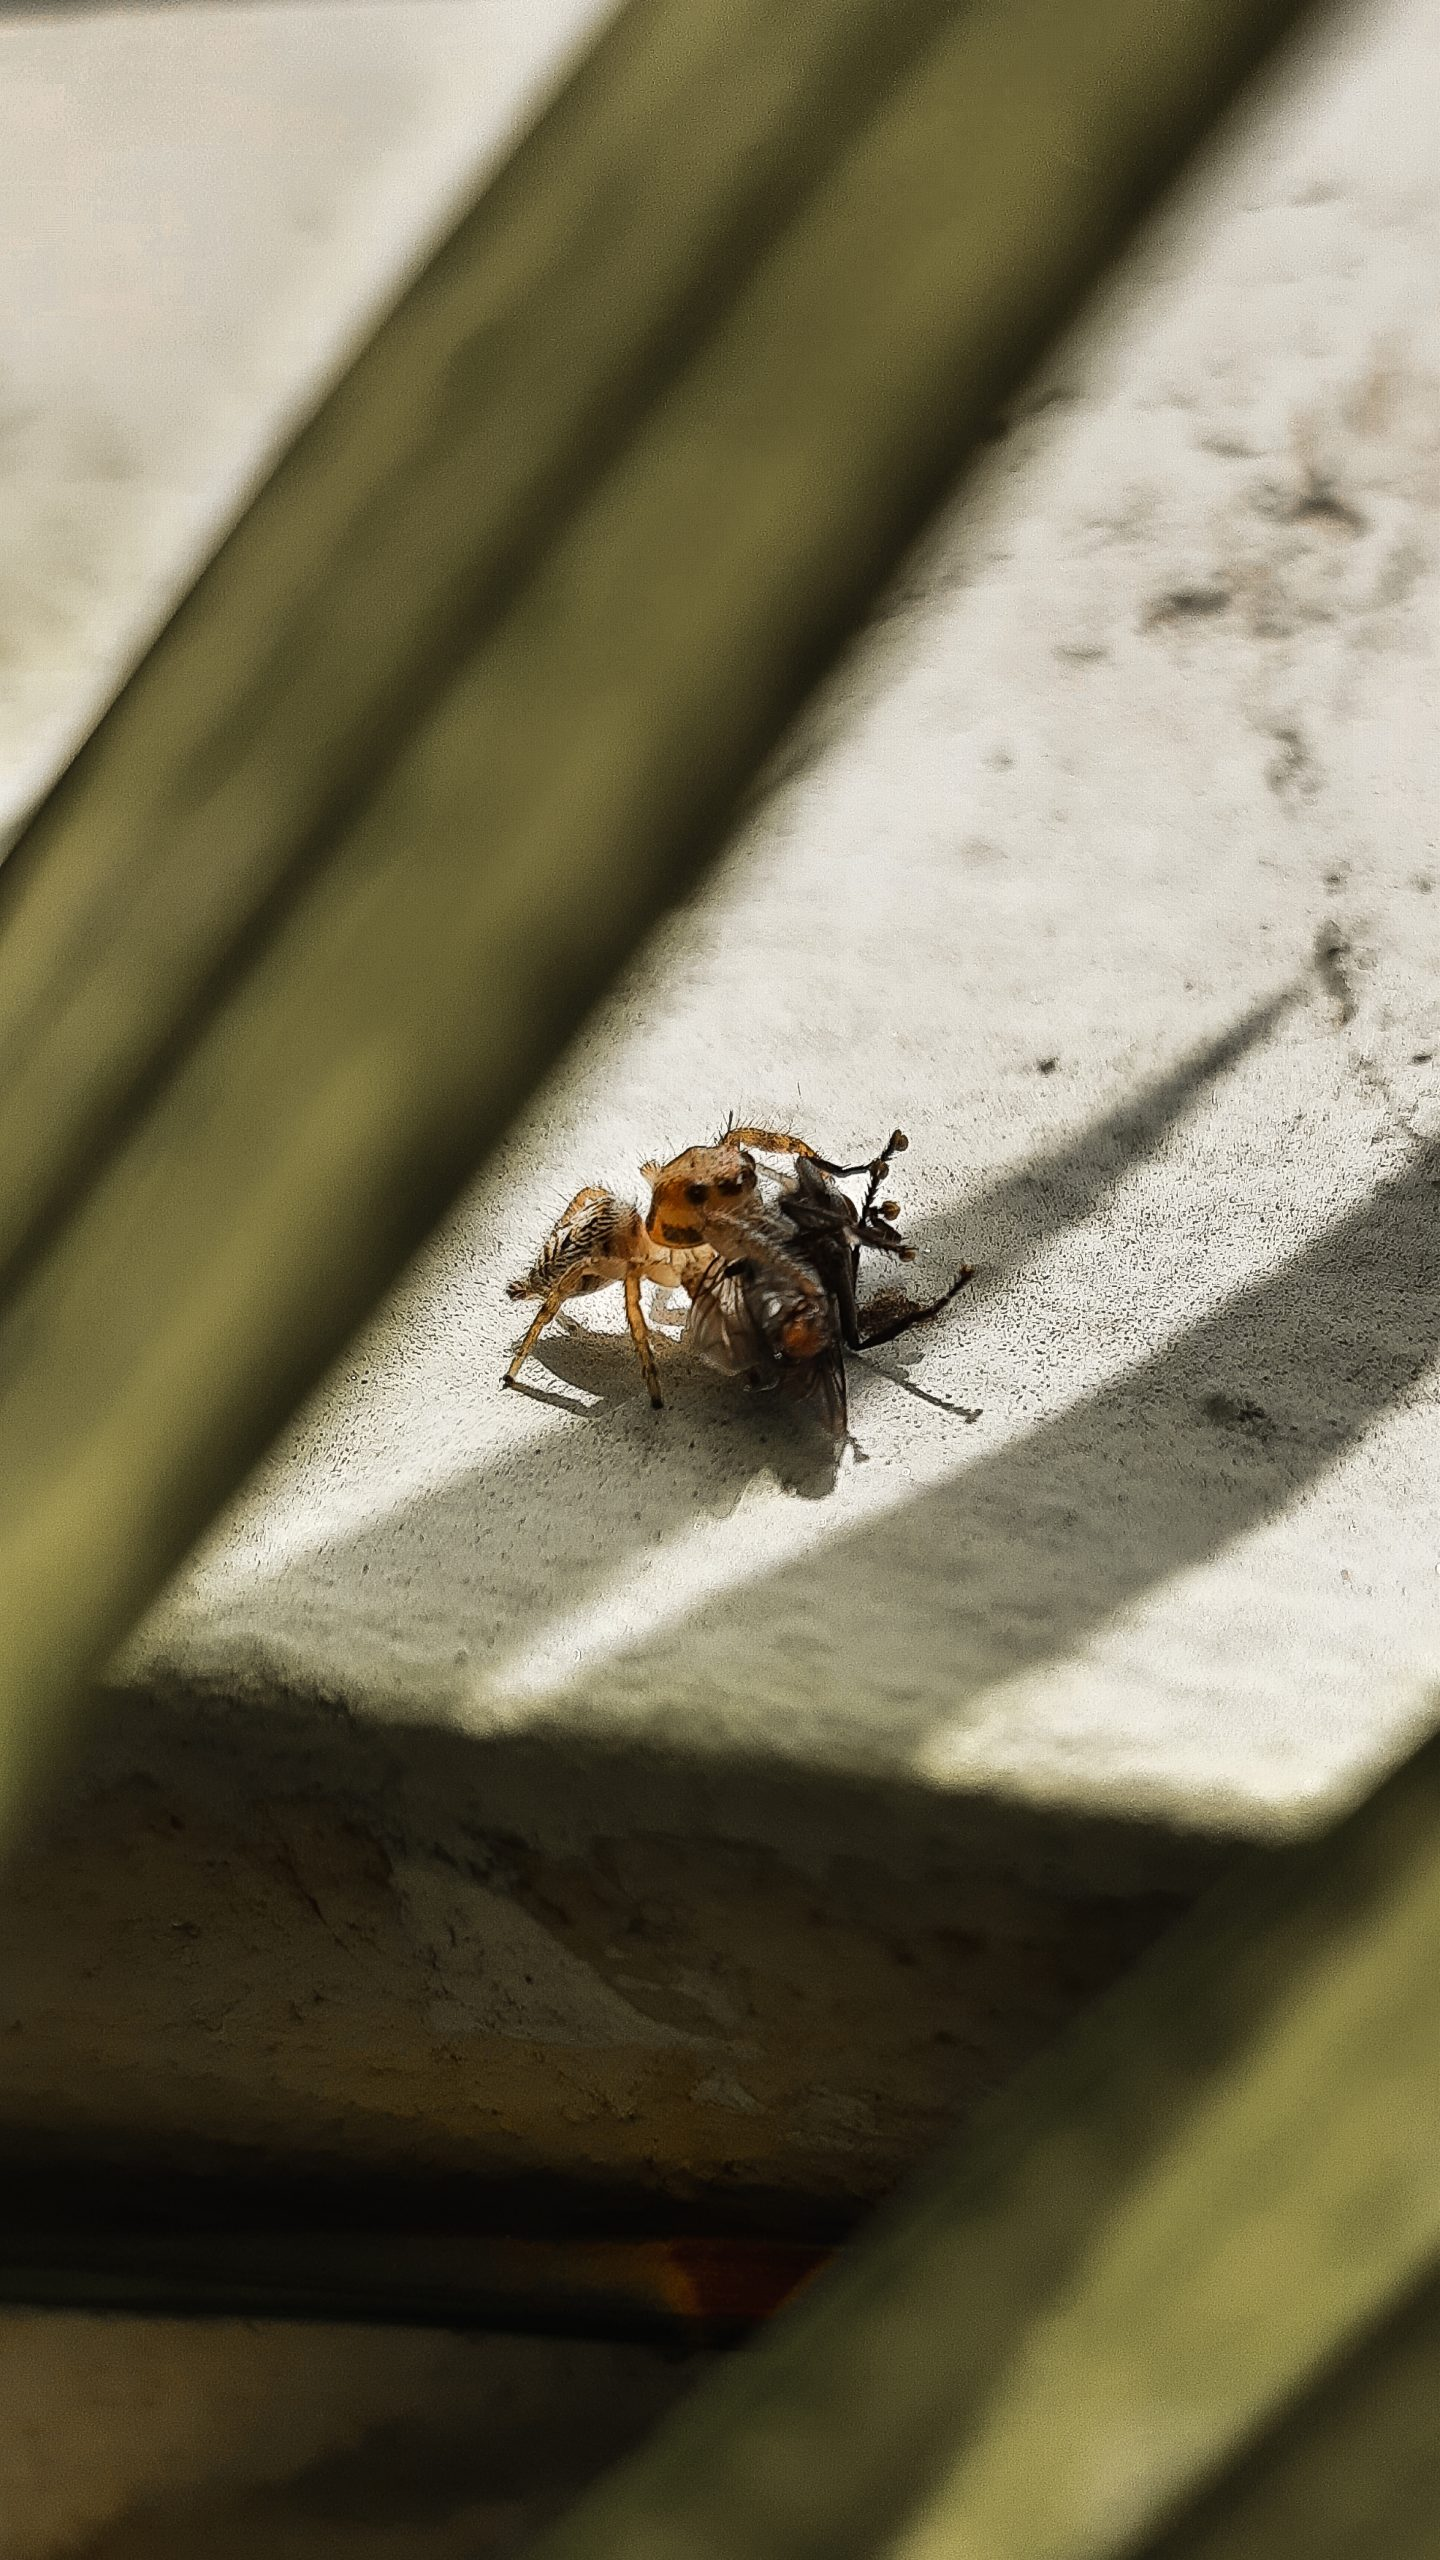 Spider and housefly